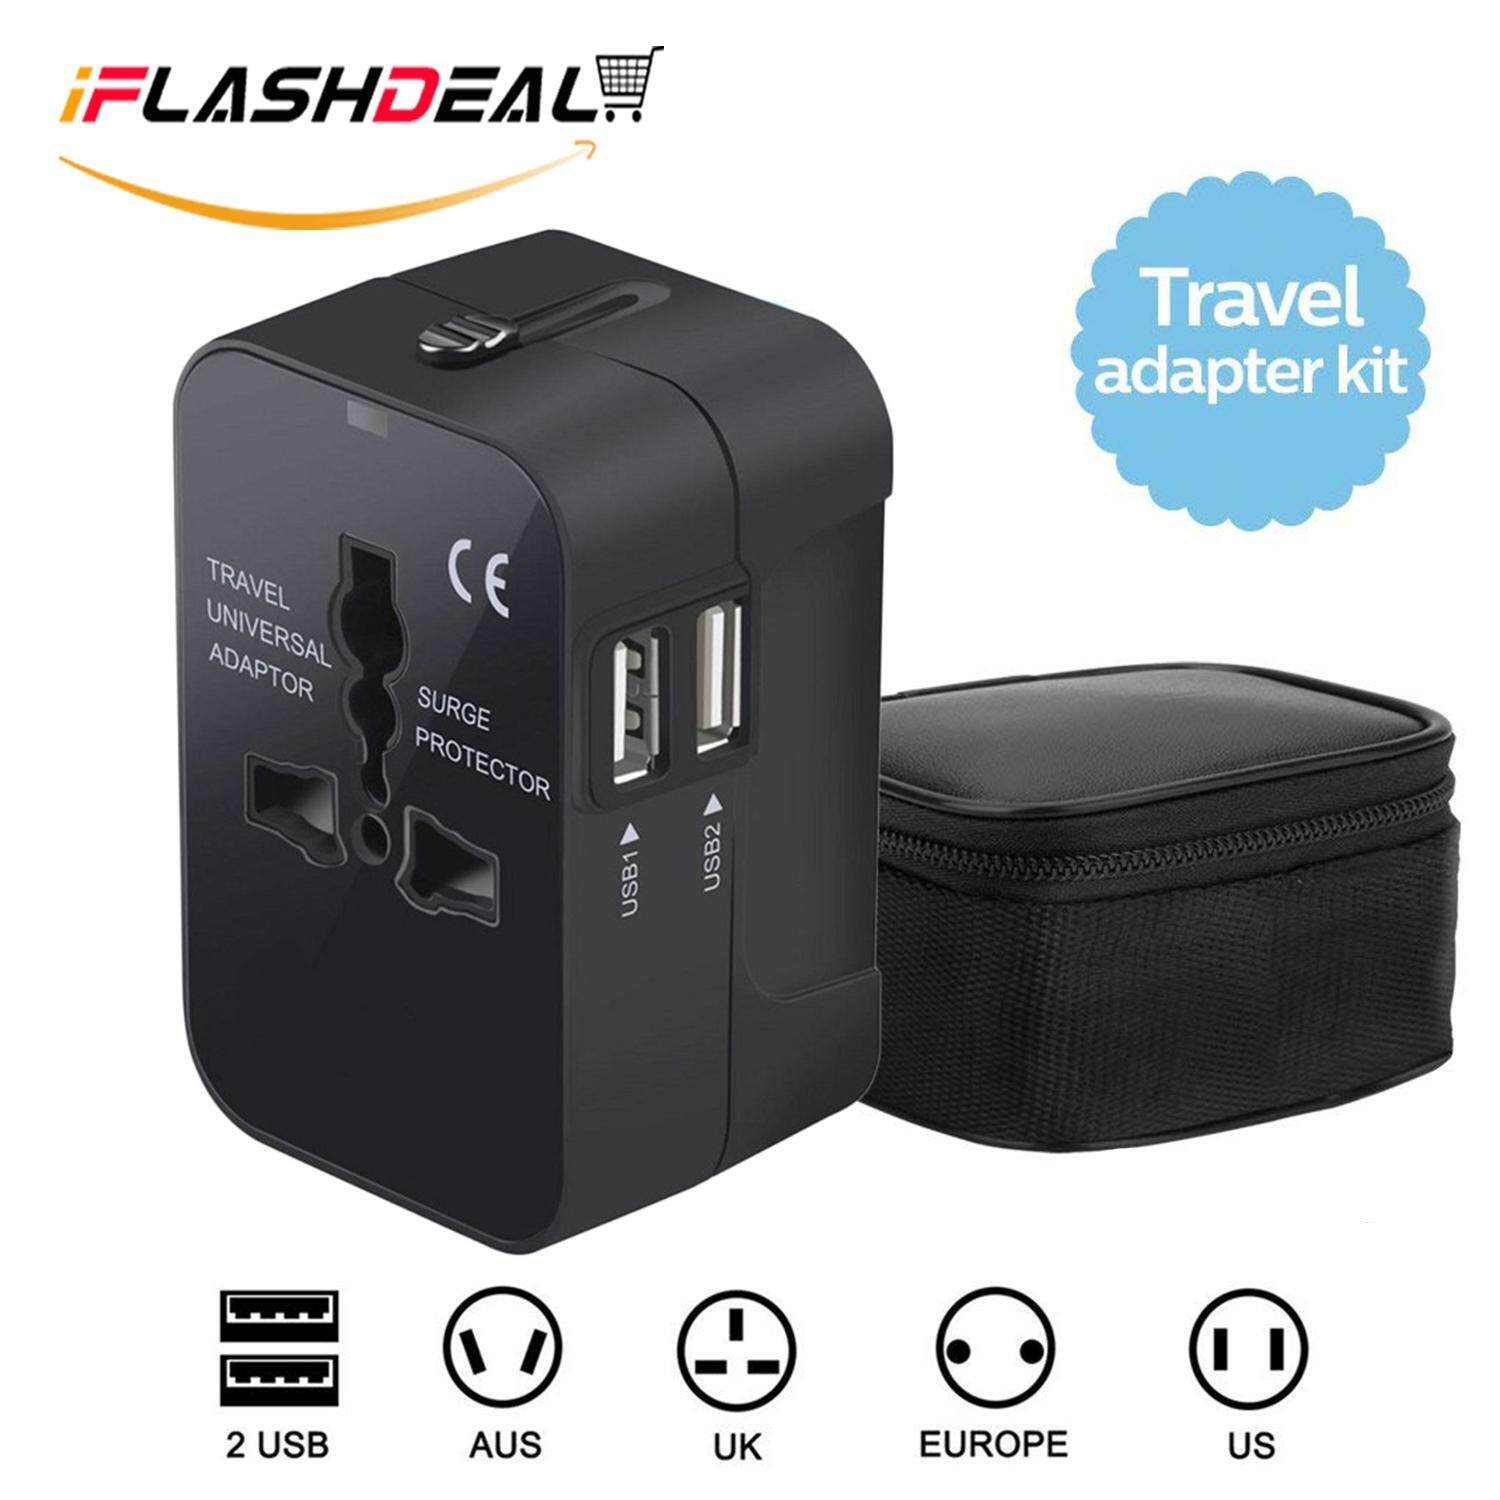 iflashdeal universal travel power adapter, international wall charger  adaptor travel plug for uk/usa